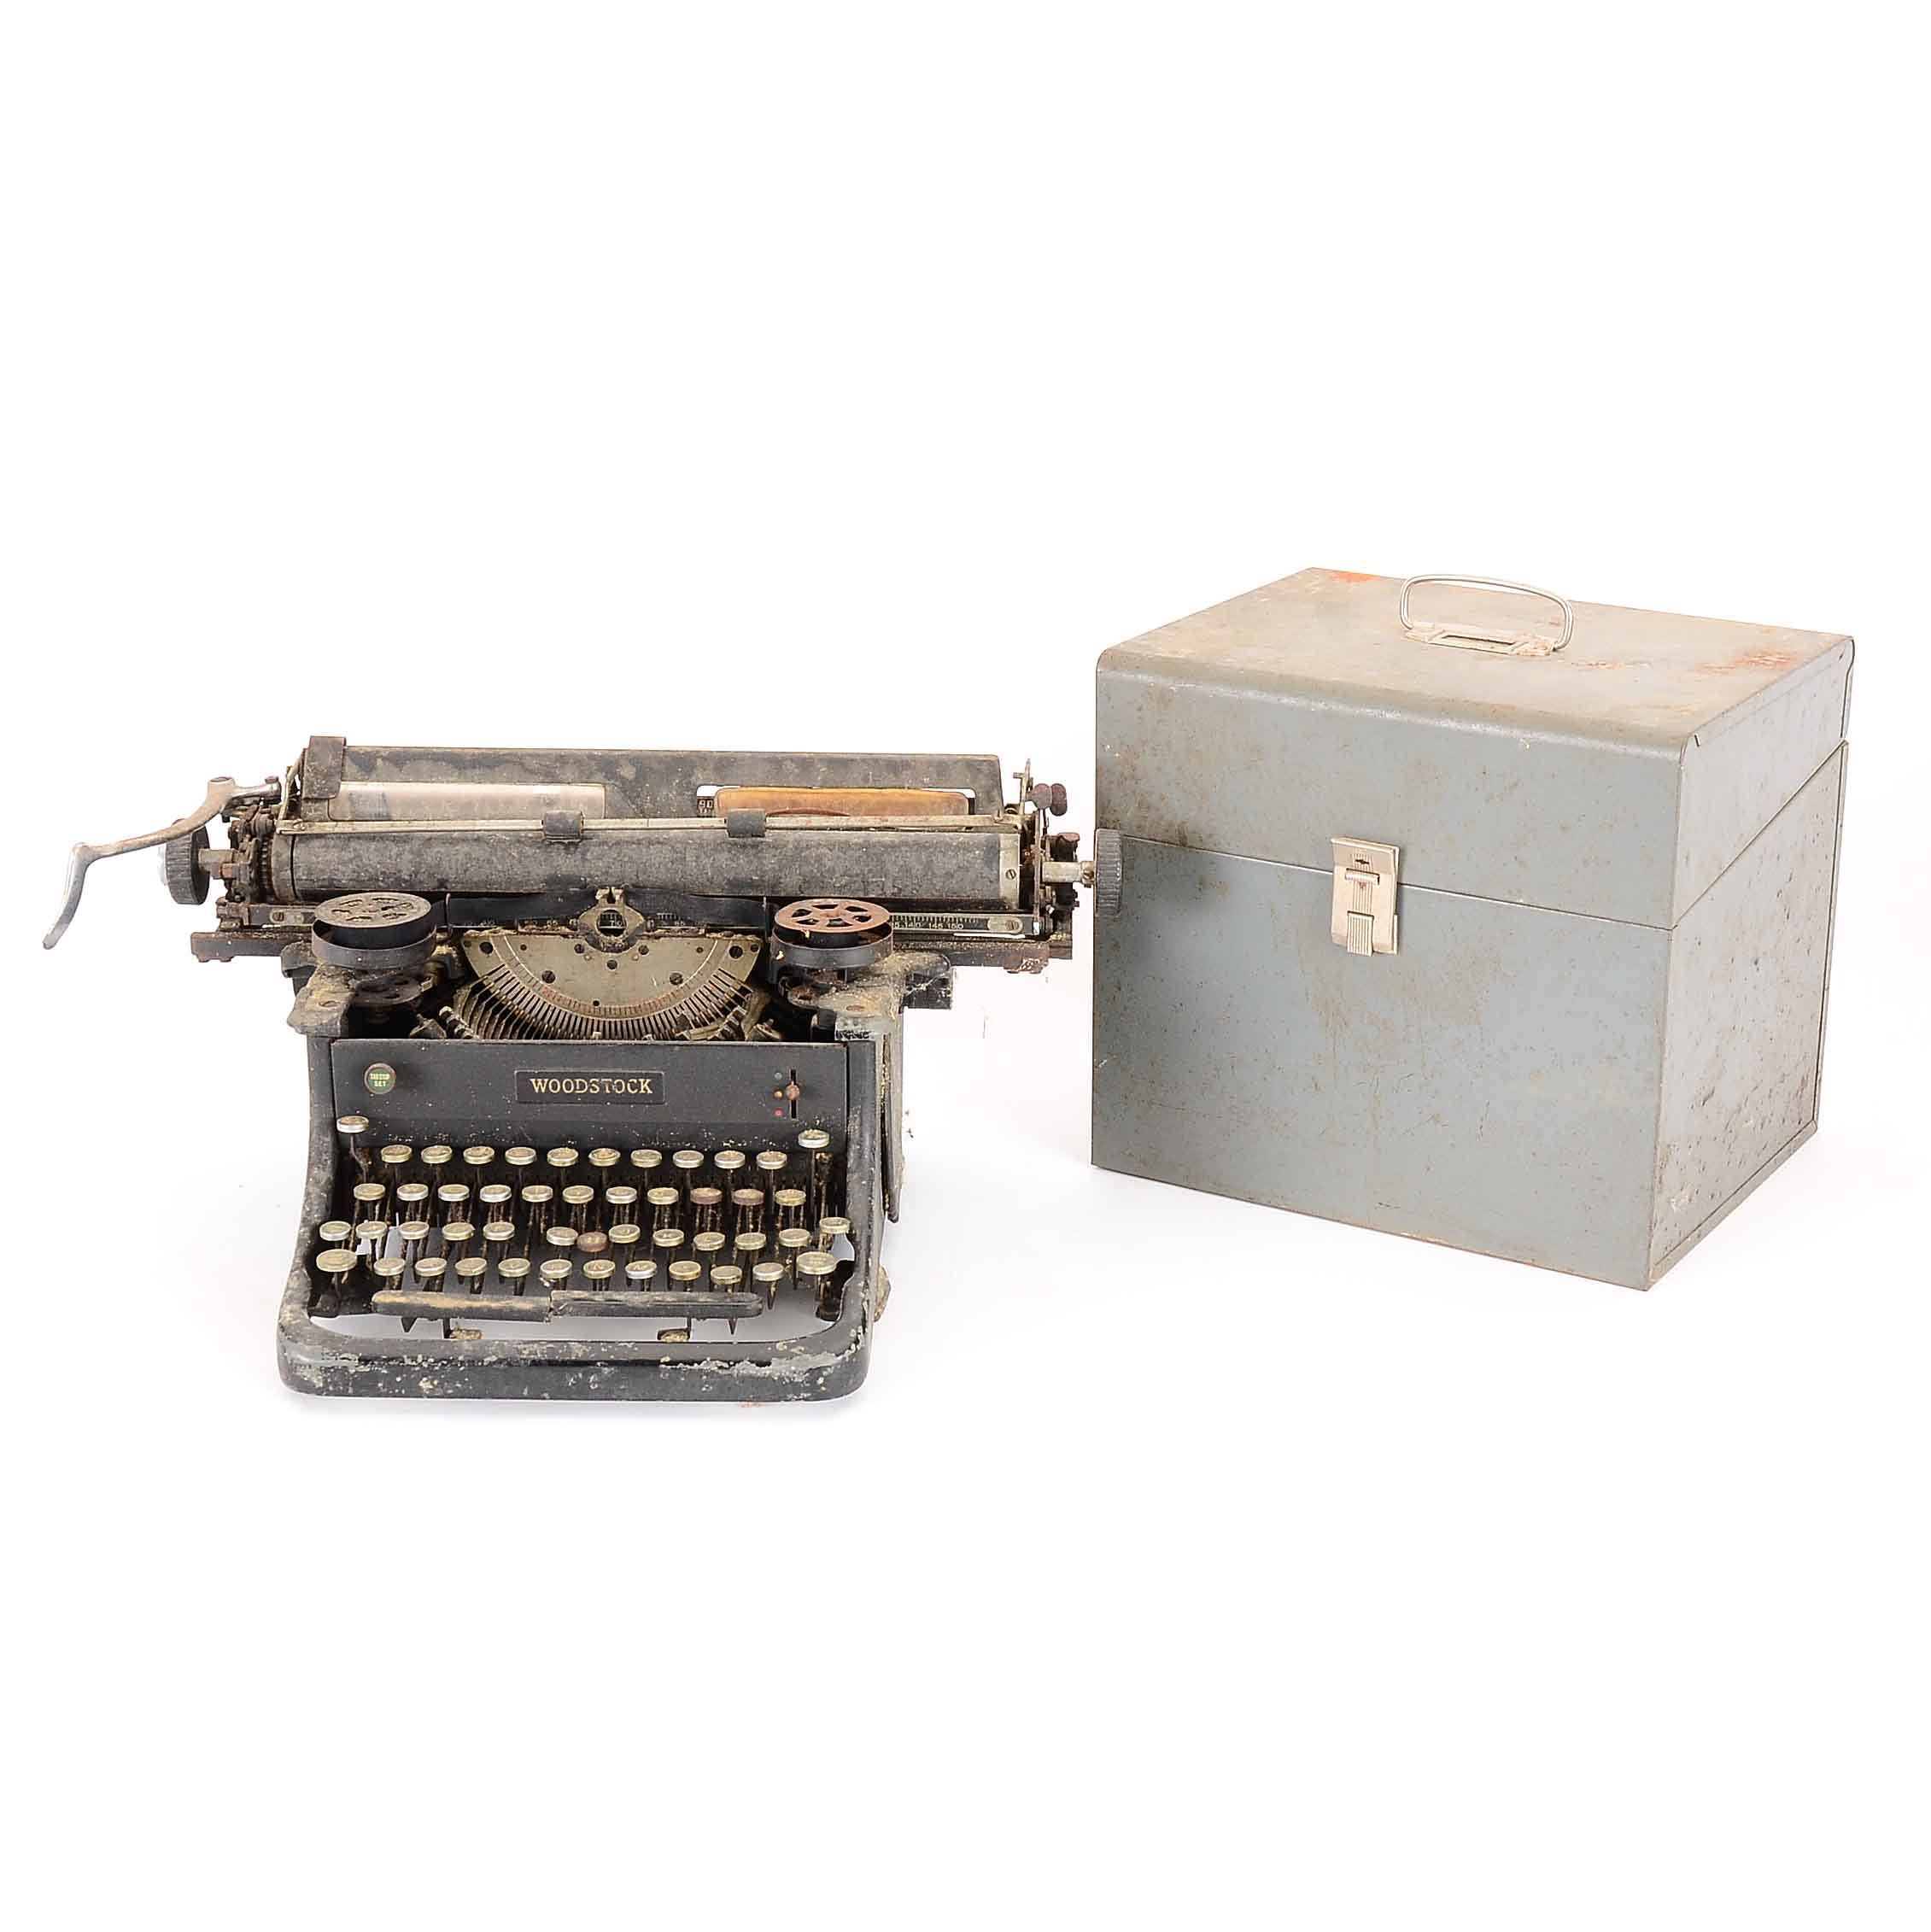 Antique Woodstock Typewriter and File Box